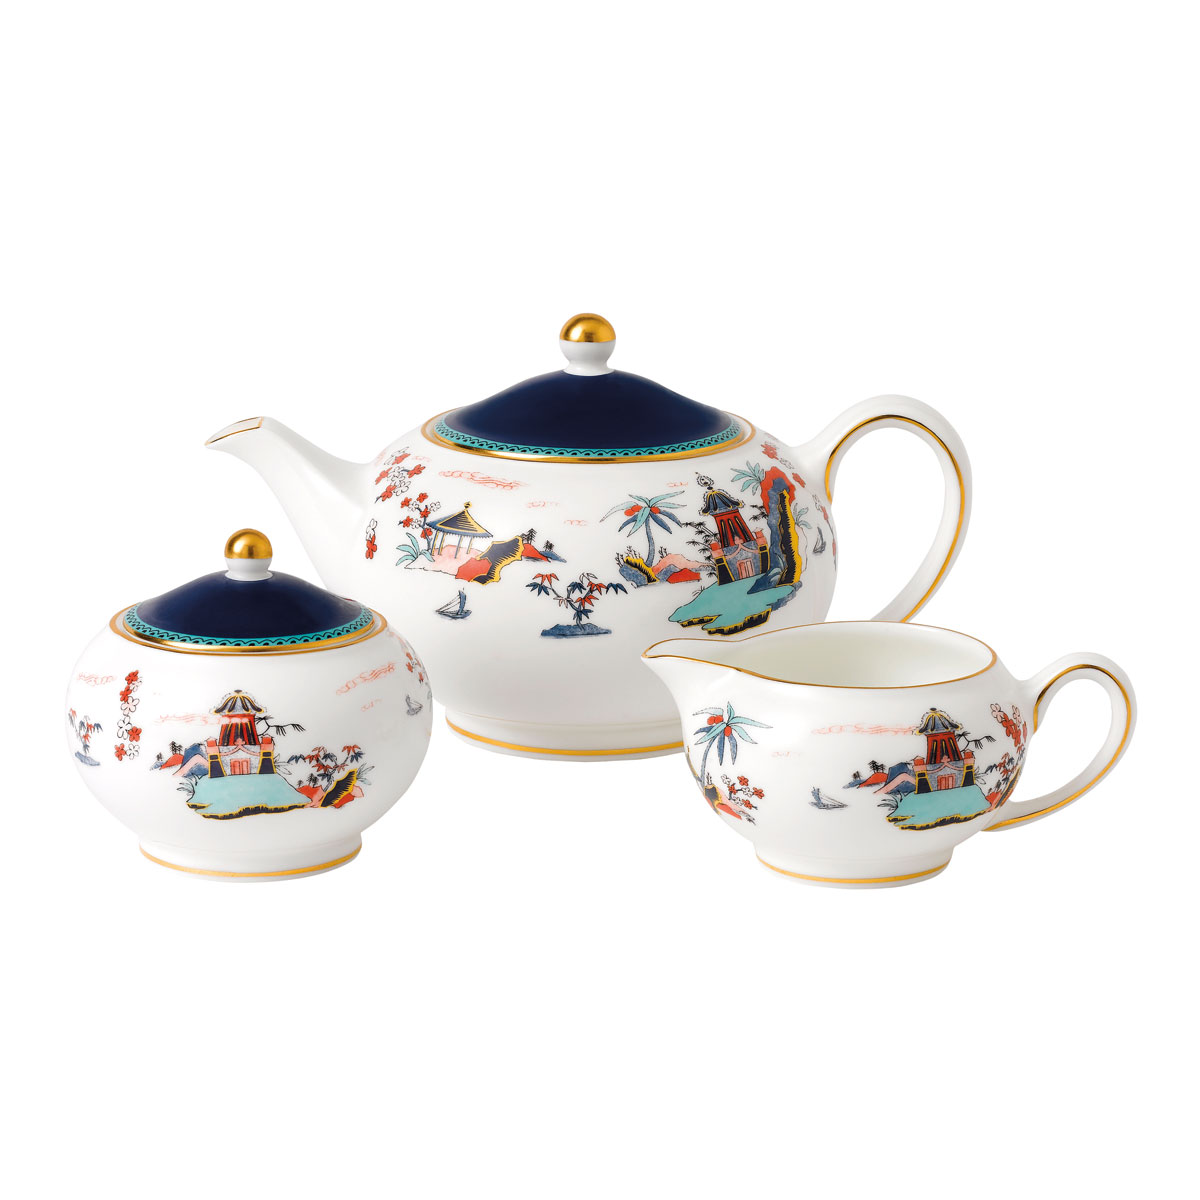 Wedgwood Wonderlust Fine Bone China 3-Piece Teaset S/S (Teapot, Sugar and Creamer) Blue Pagoda